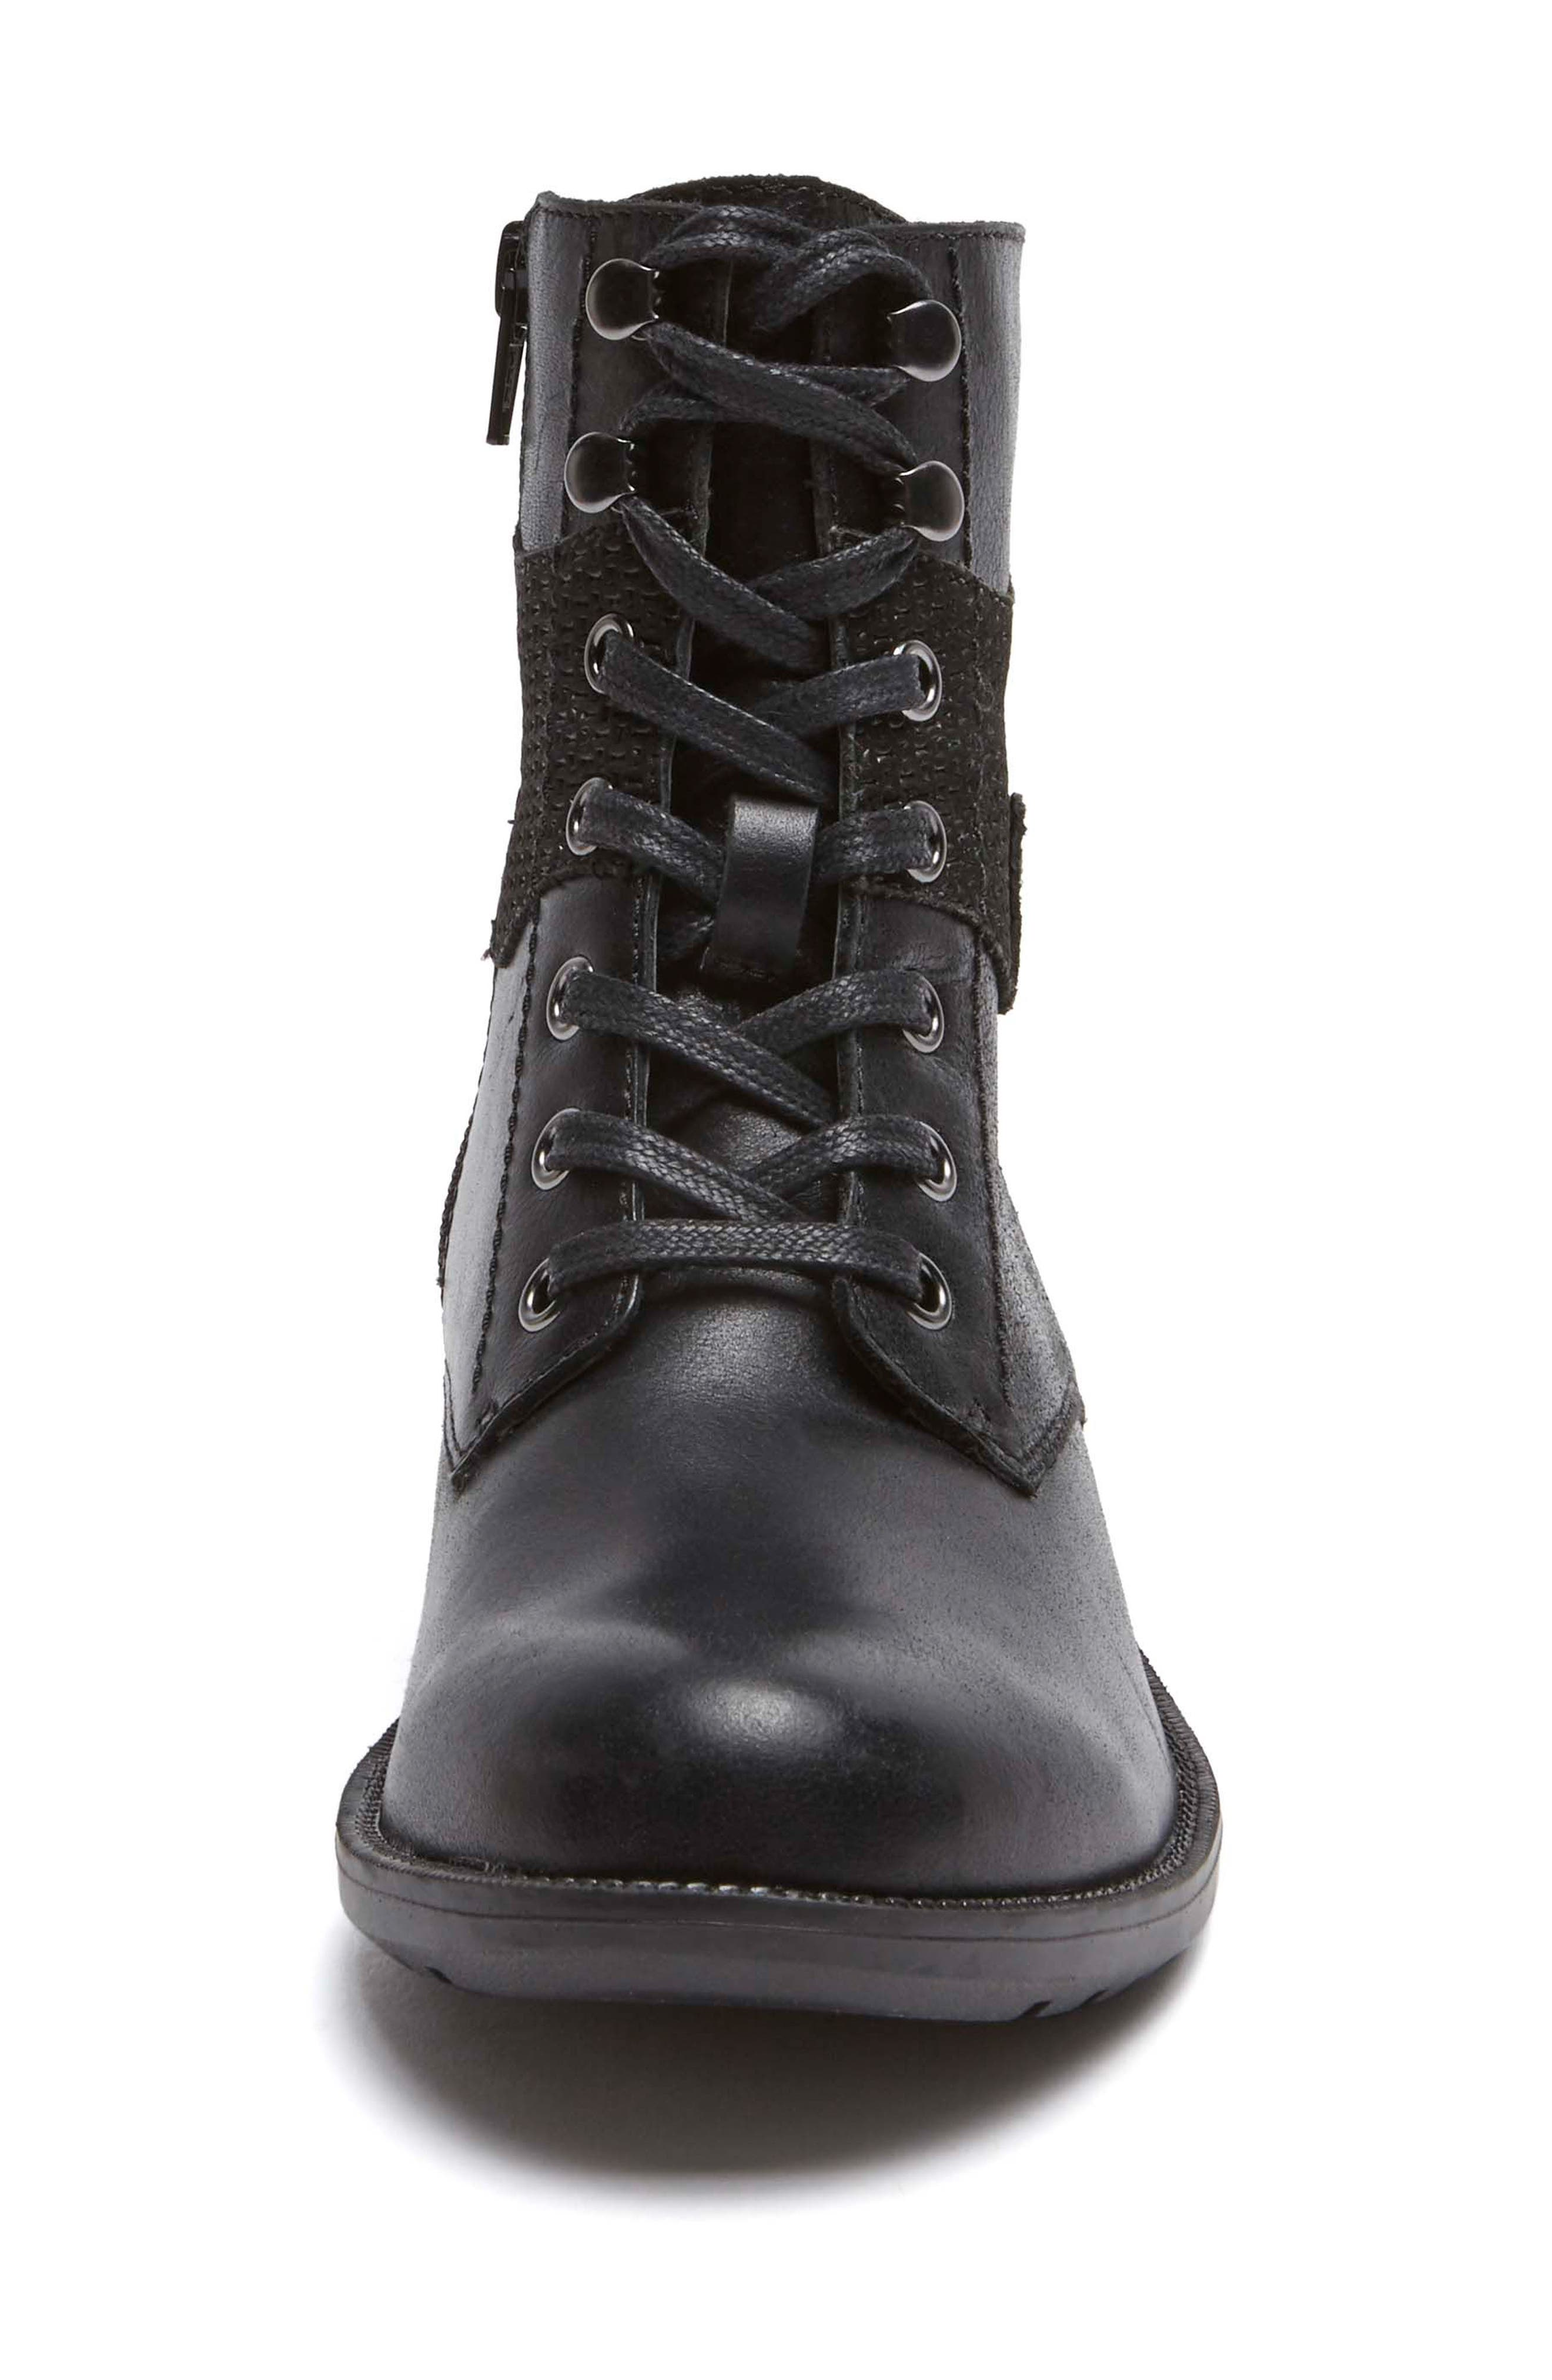 Copley Waterproof Combat Boot,                             Alternate thumbnail 4, color,                             BLACK LEATHER